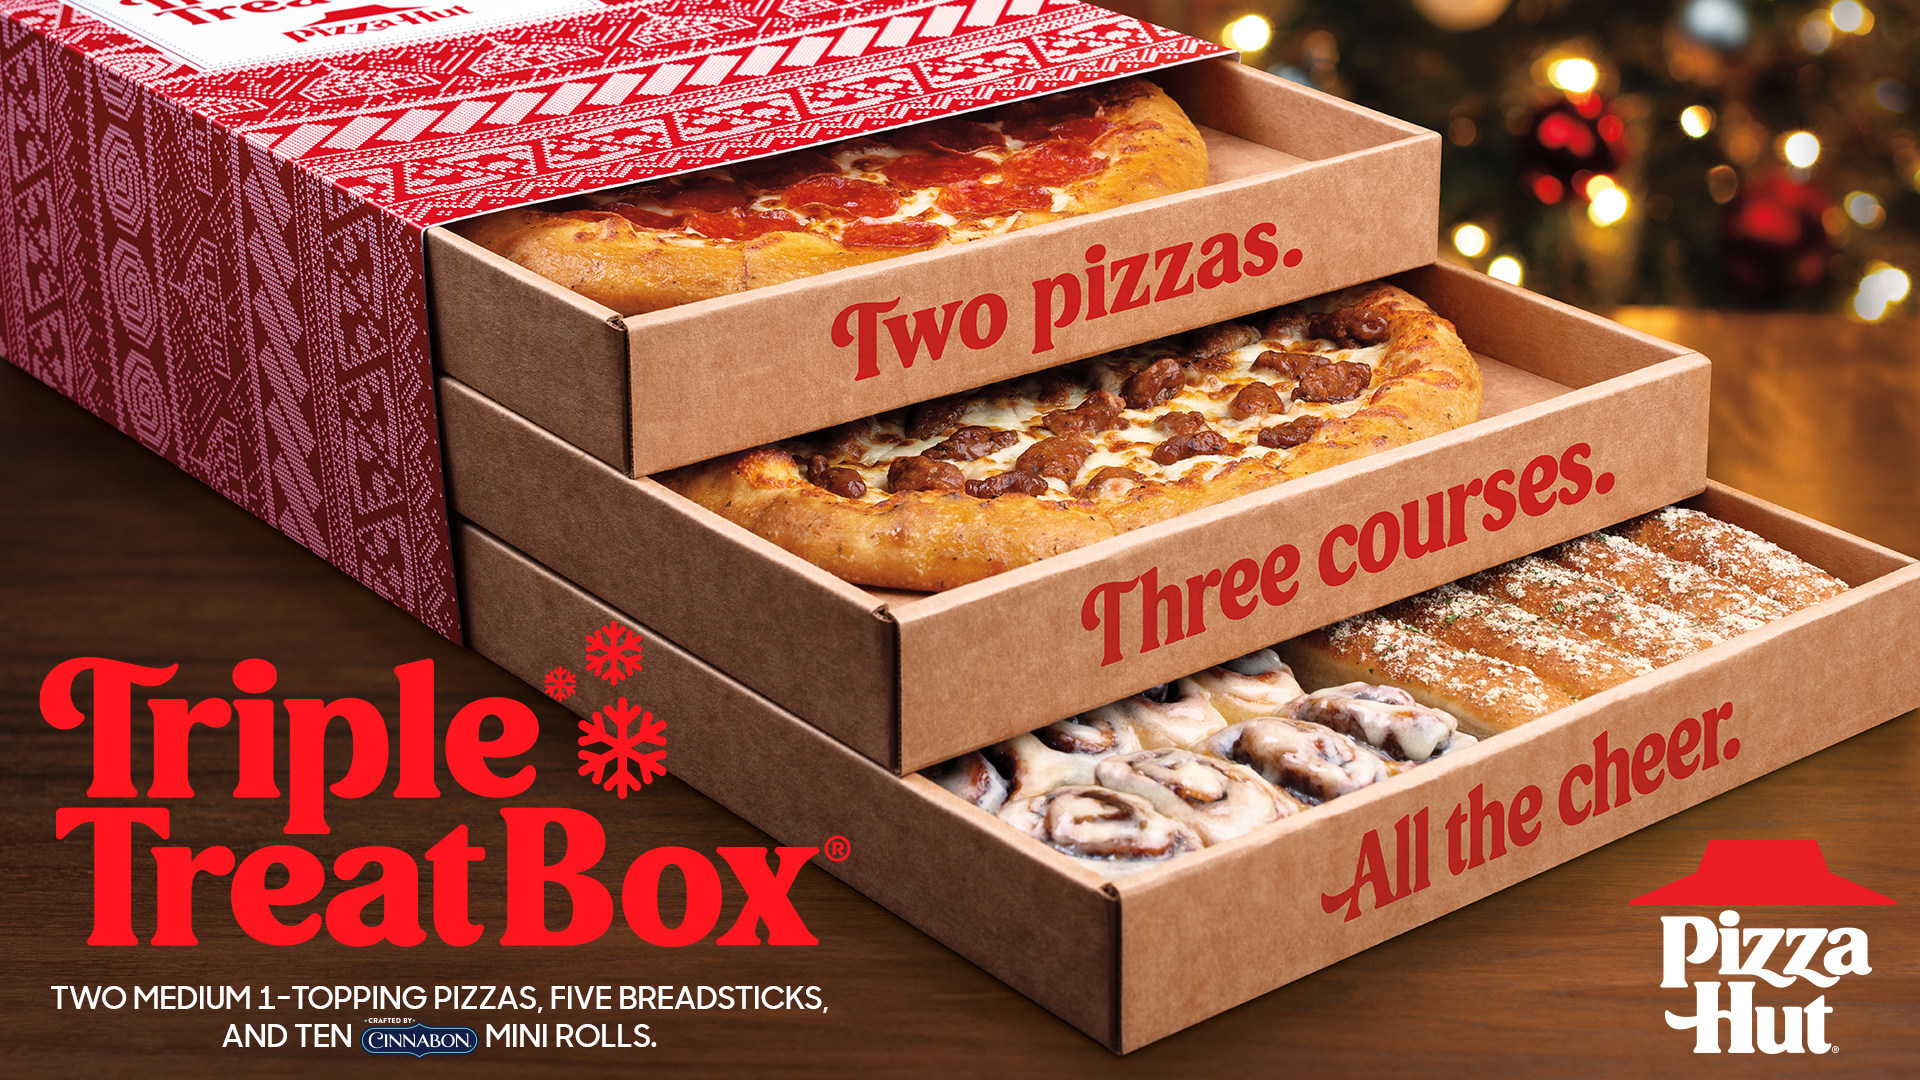 Pizza Hut Releases Triple Treat Box That Includes Pizza And Cinnabon Cinnamon Rolls Pennlive Com